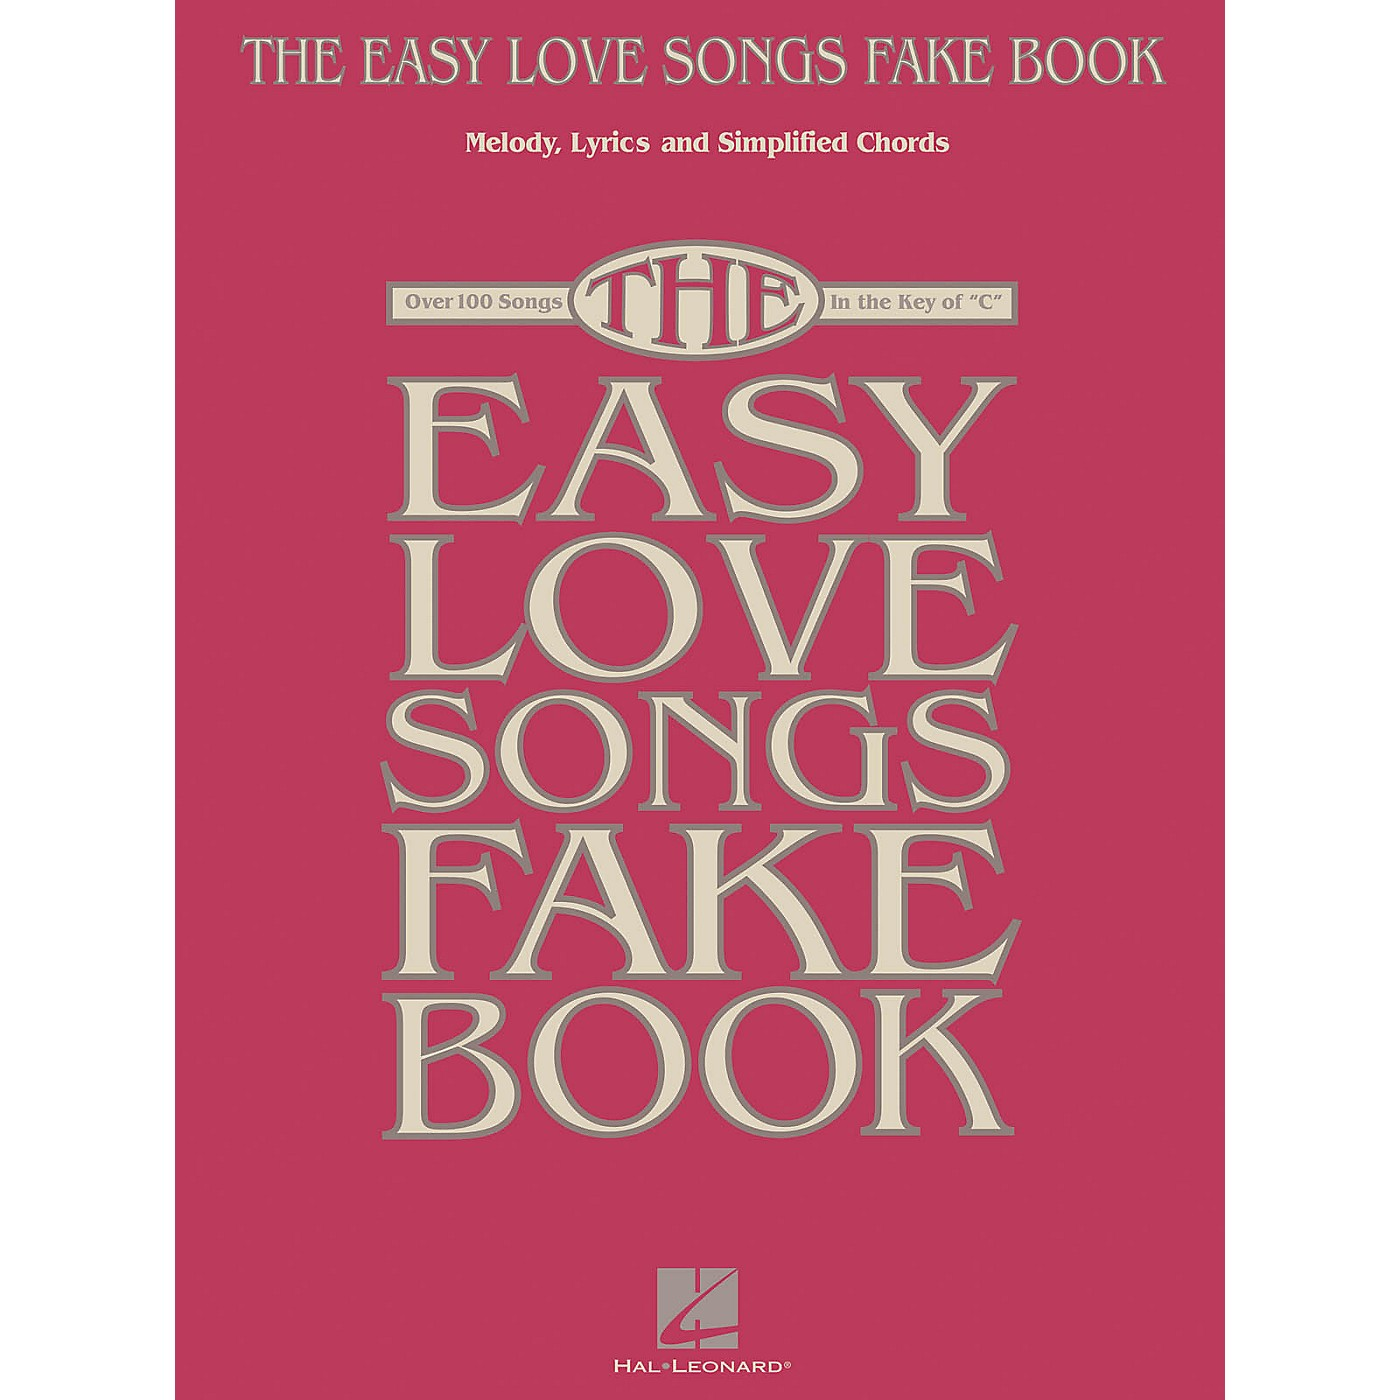 Hal Leonard The Easy Love Songs Fake Book Easy Fake Book Series Softcover thumbnail